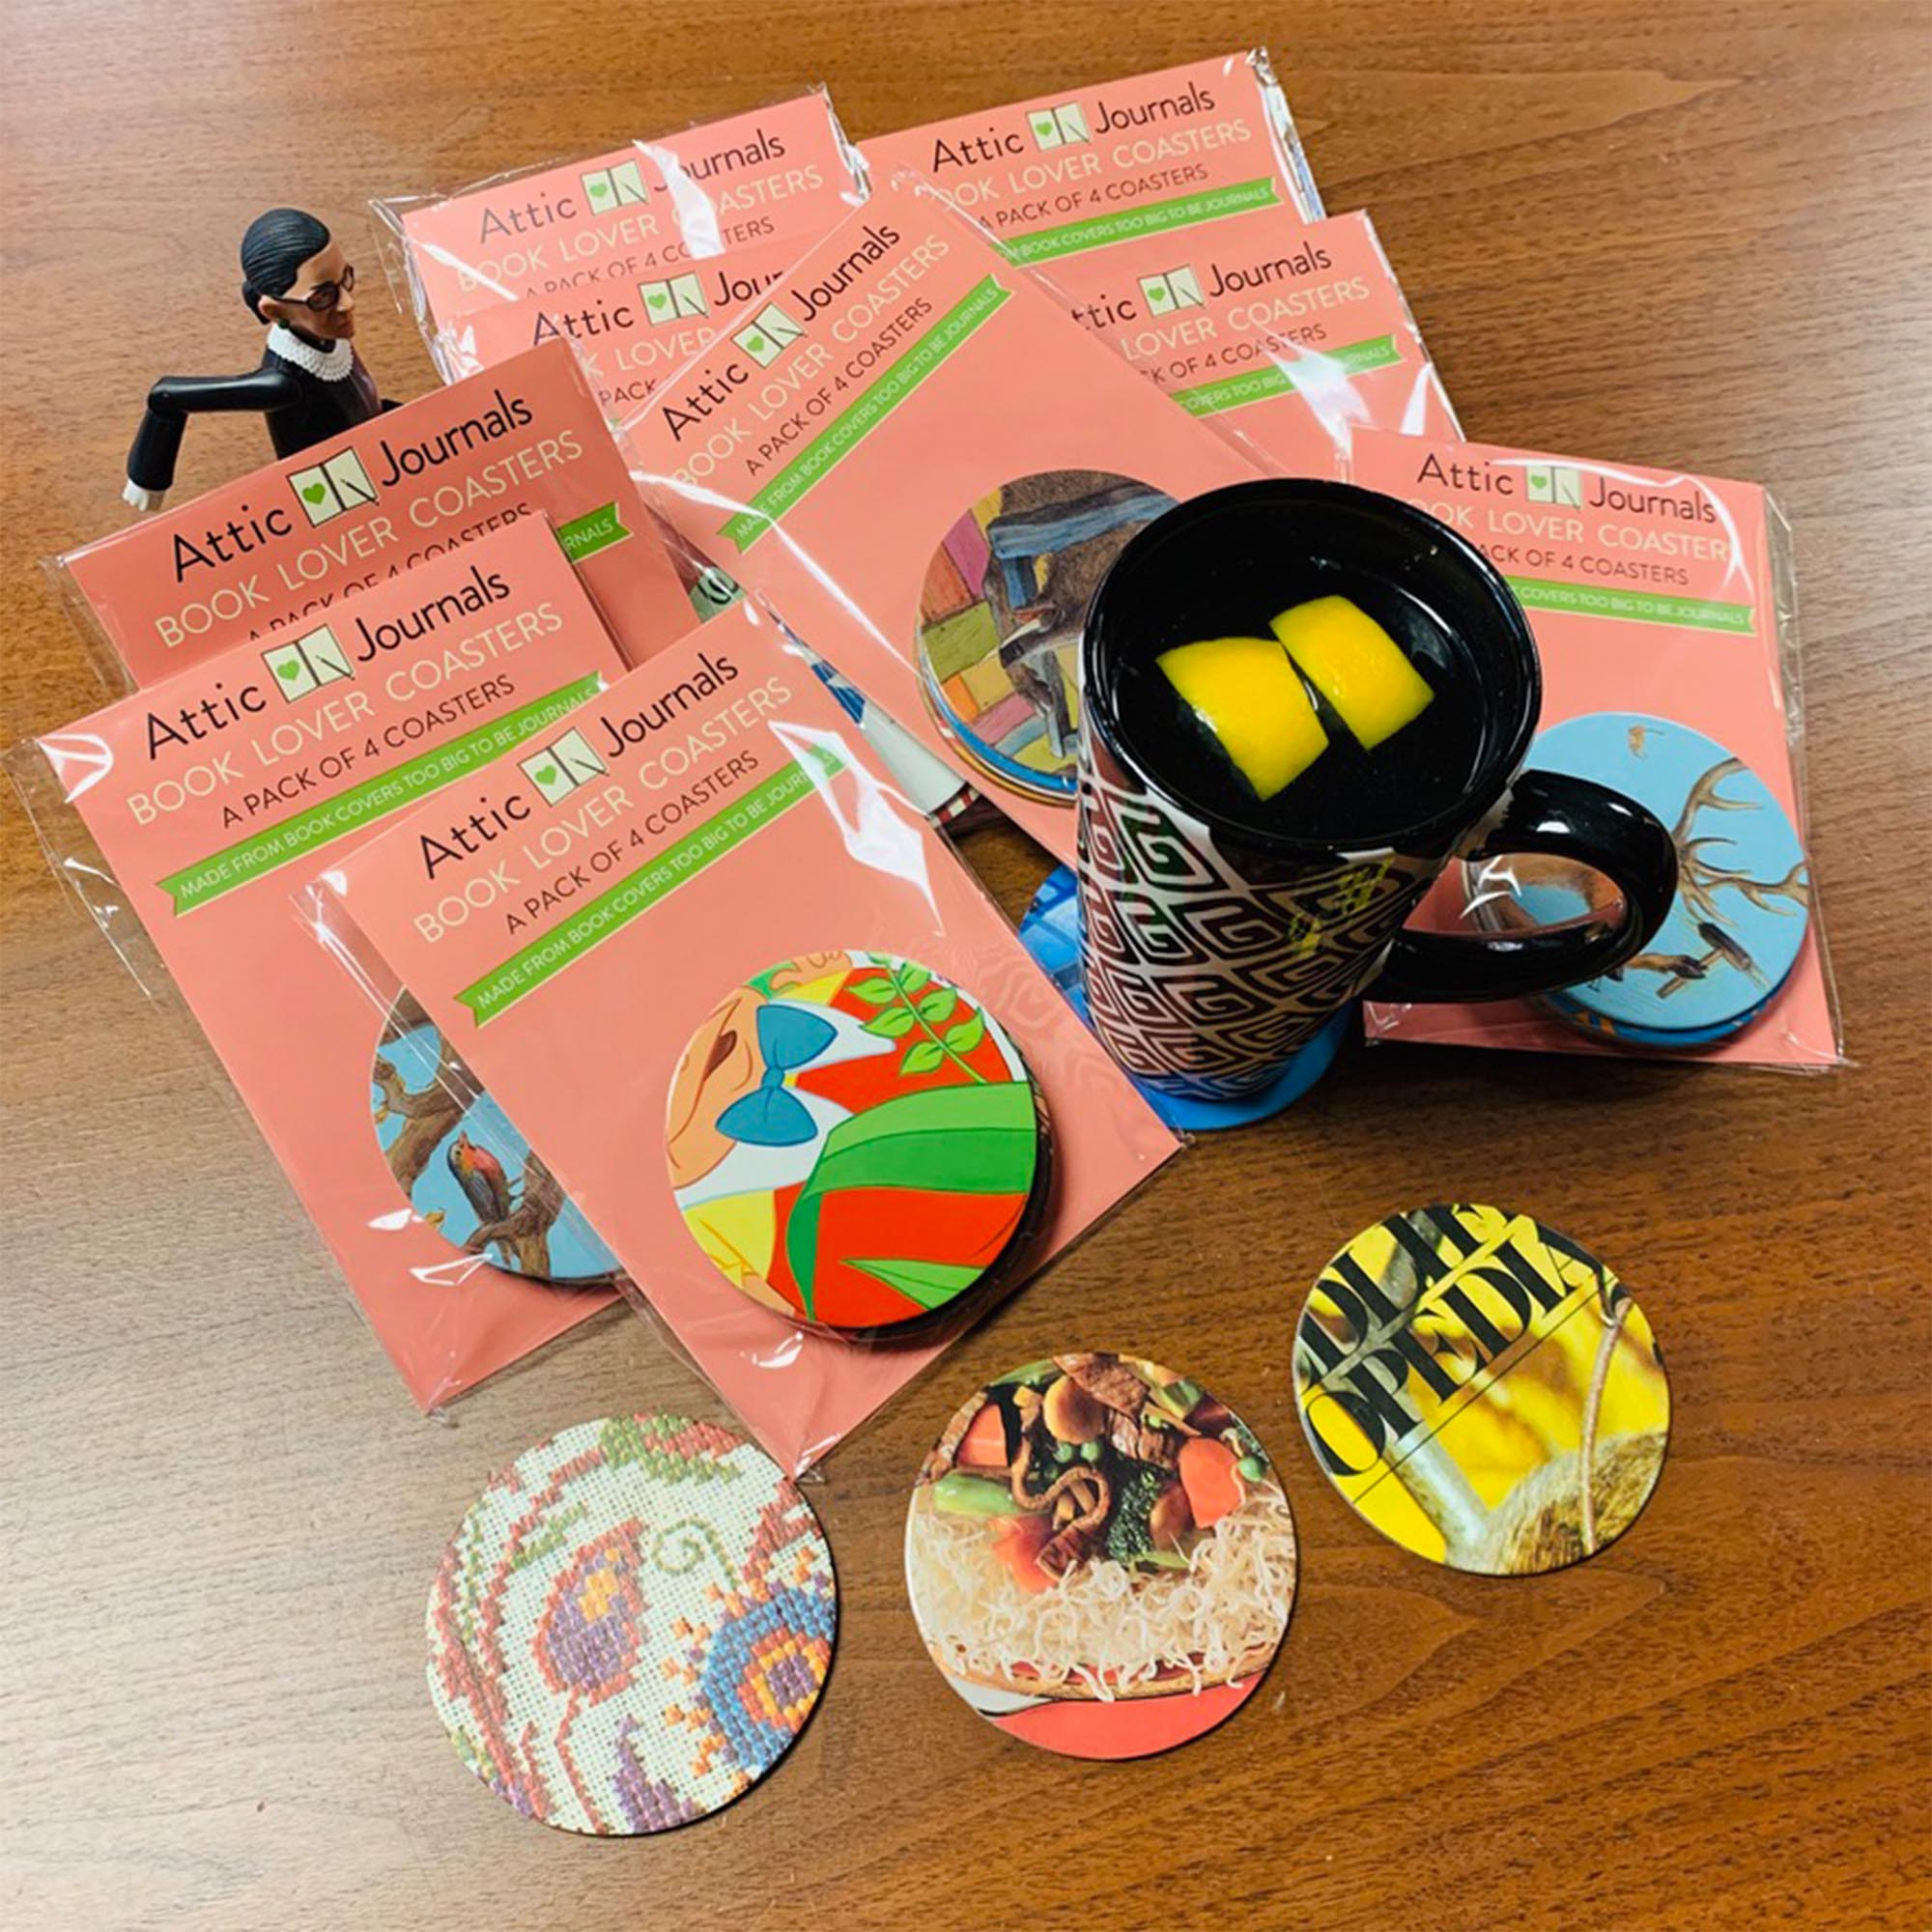 Packages of drink coasters made from recycled board books. Variety of colors and patters.  A mug with water and lemon is sitting on one coaster, and a figure of Ruth Bader Ginsburg is placed  between the packages